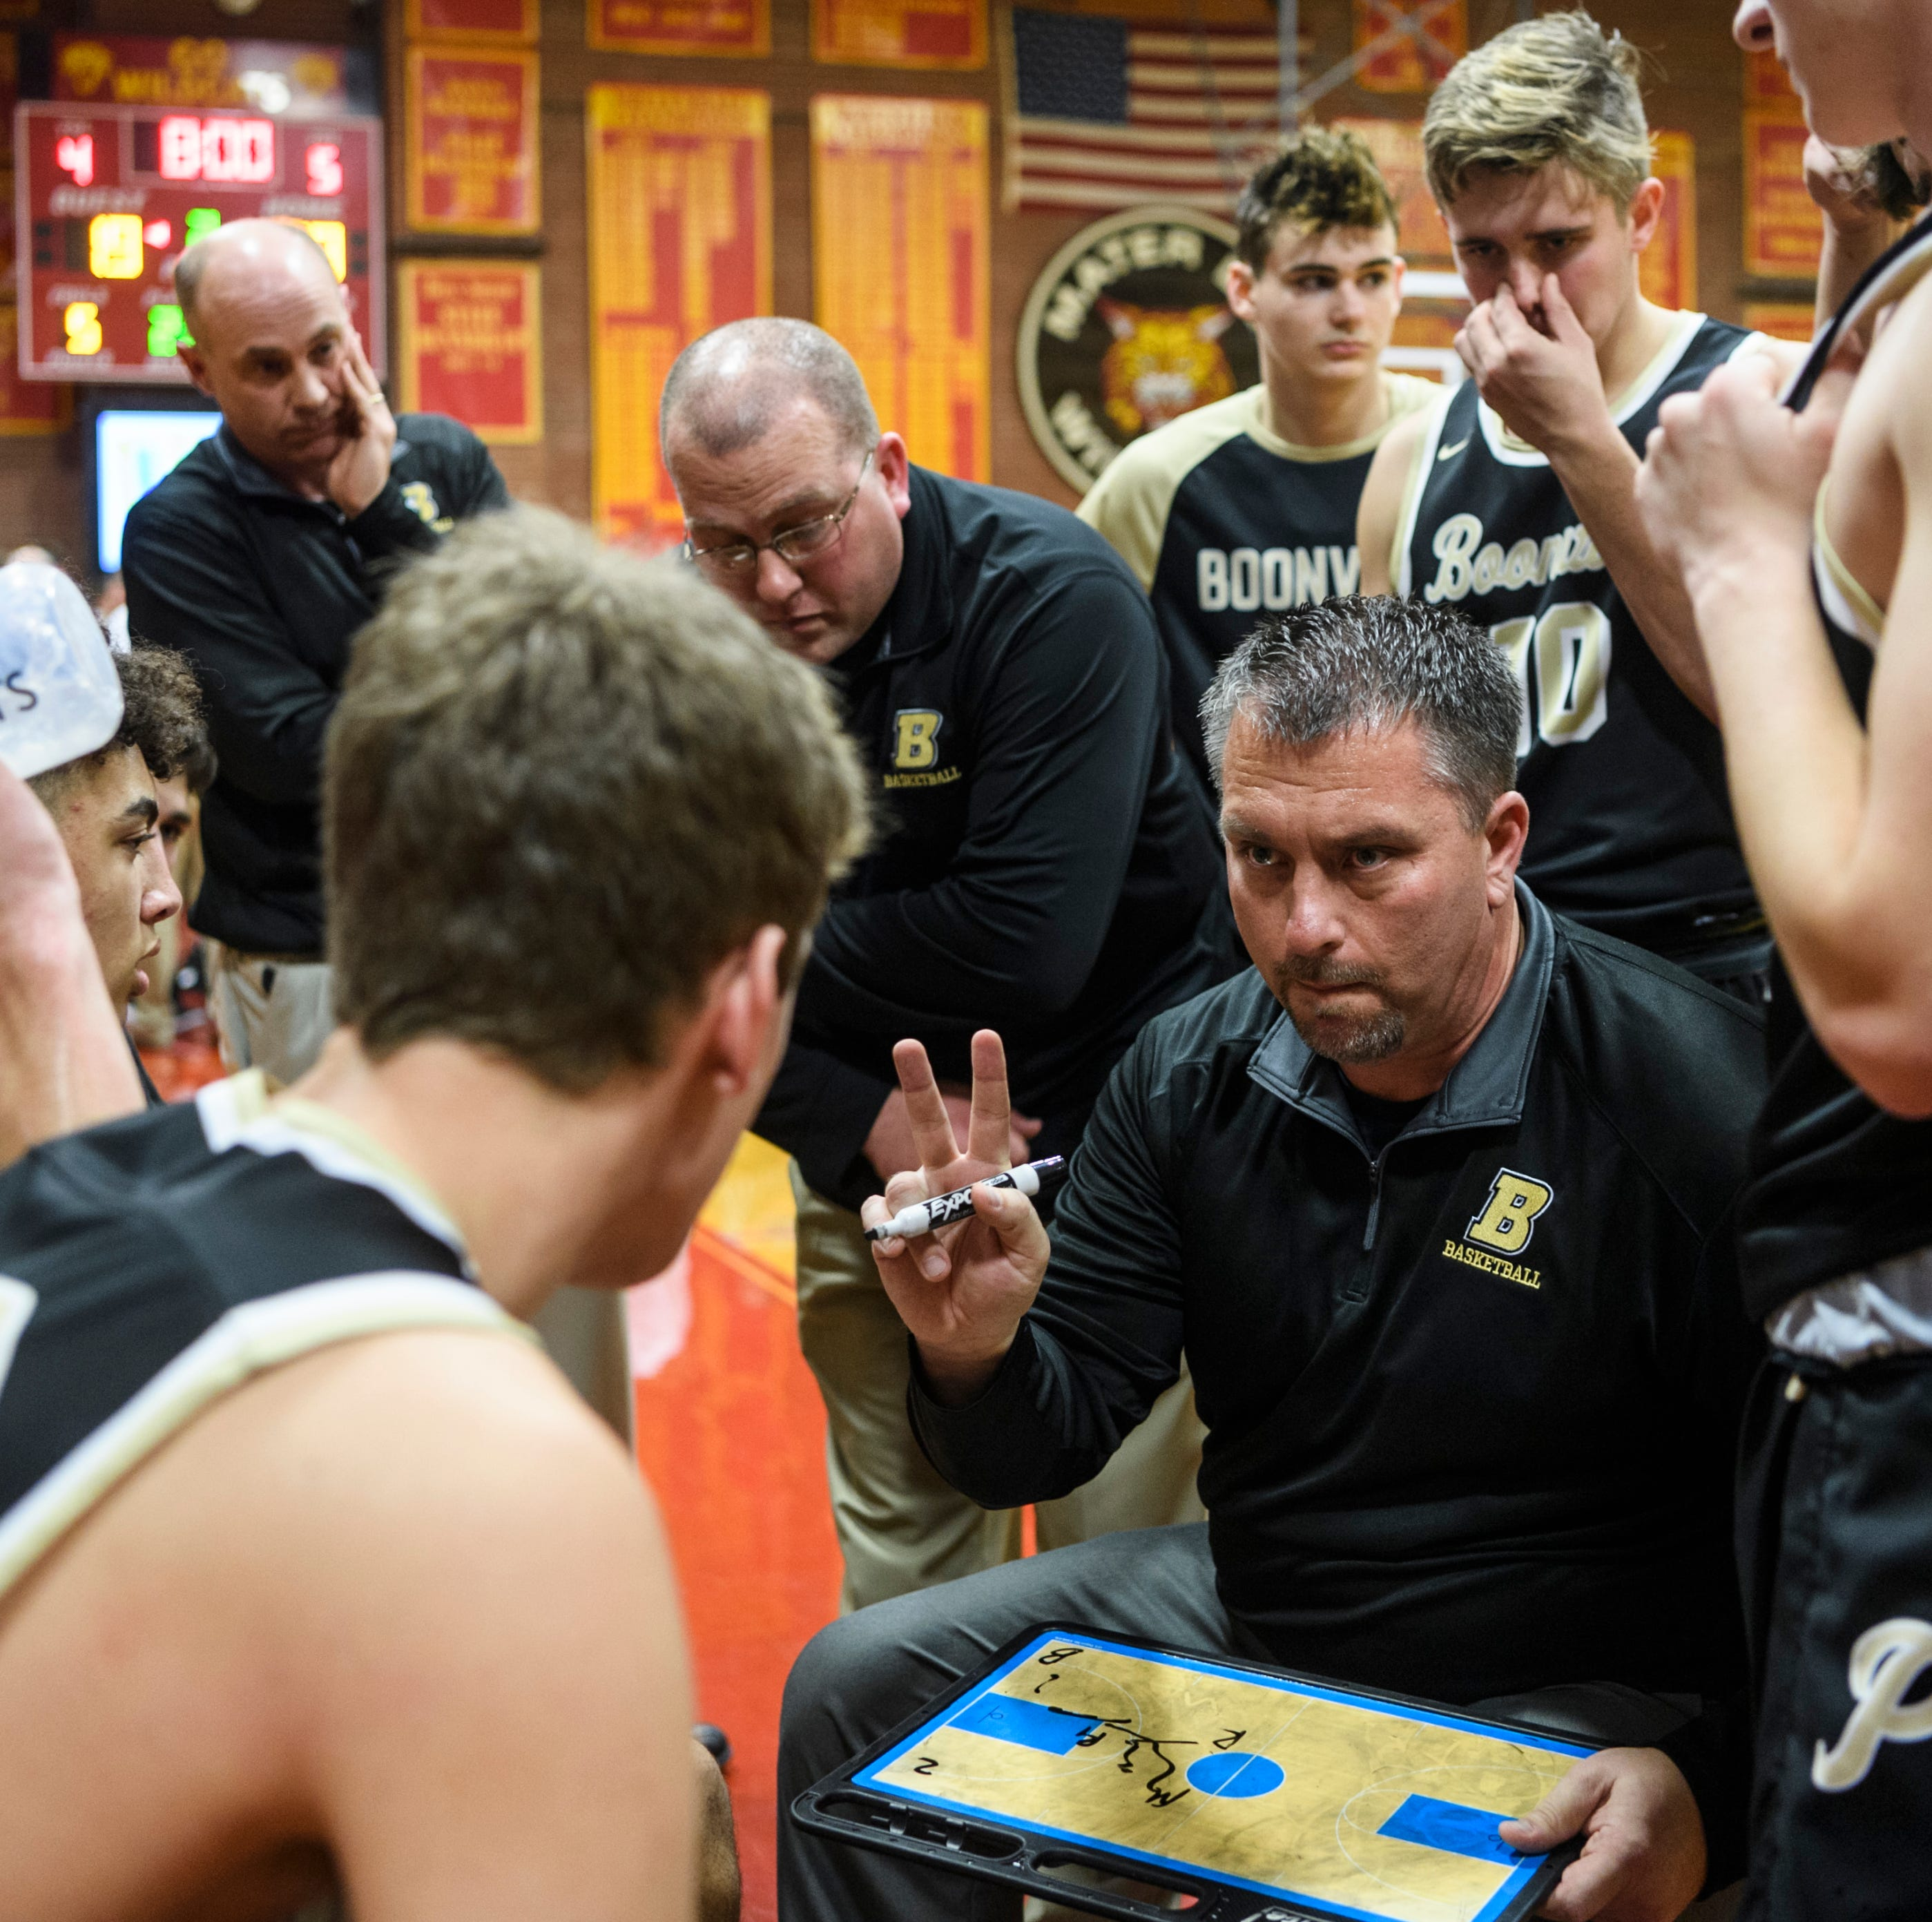 Brian Schoonover steps down as Boonville boys basketball coach